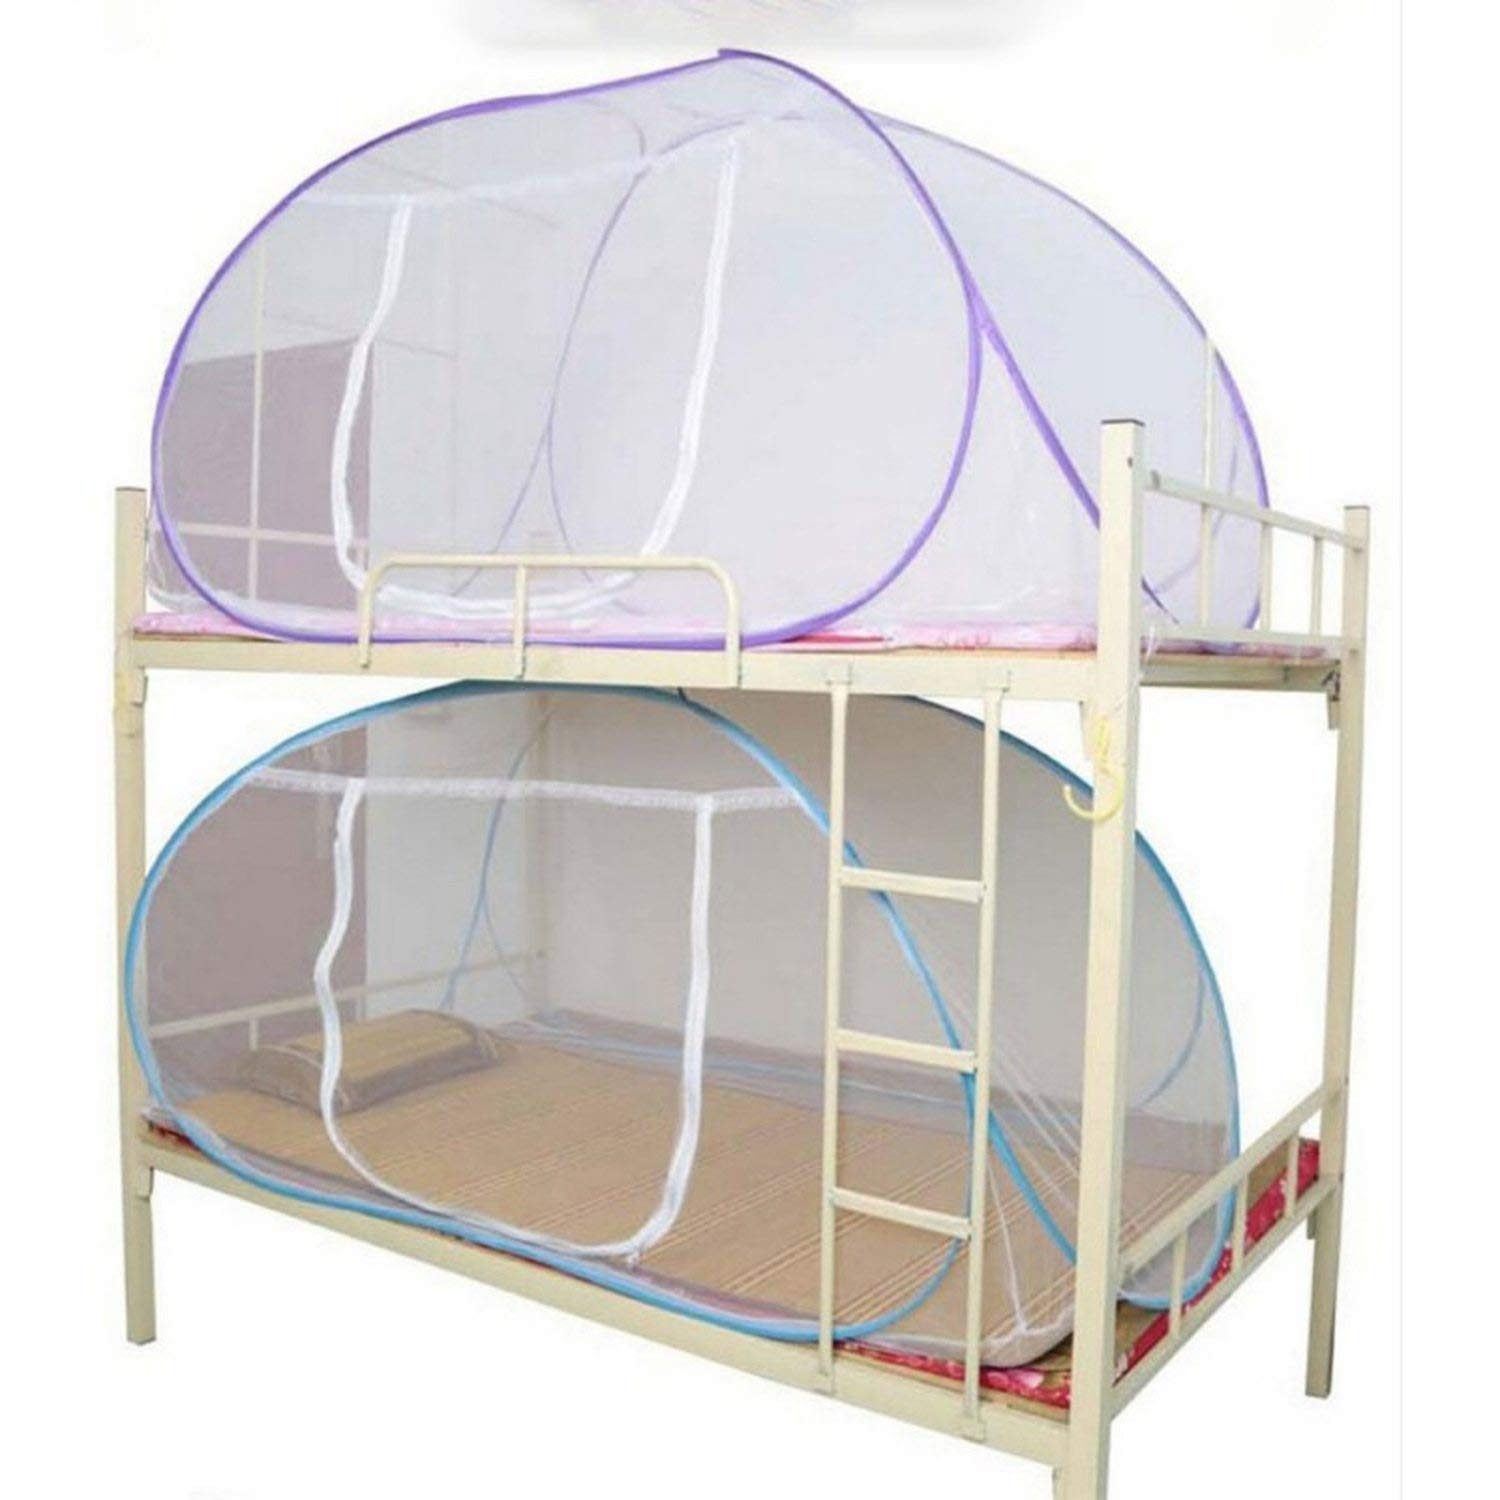 Mosquito Net for Bed Pink Blue Purple Student Bunk Bed Net Mesh Adult Double Bed Netting Tent Mosquito,D by Try My Best Mosquito Net (Image #1)